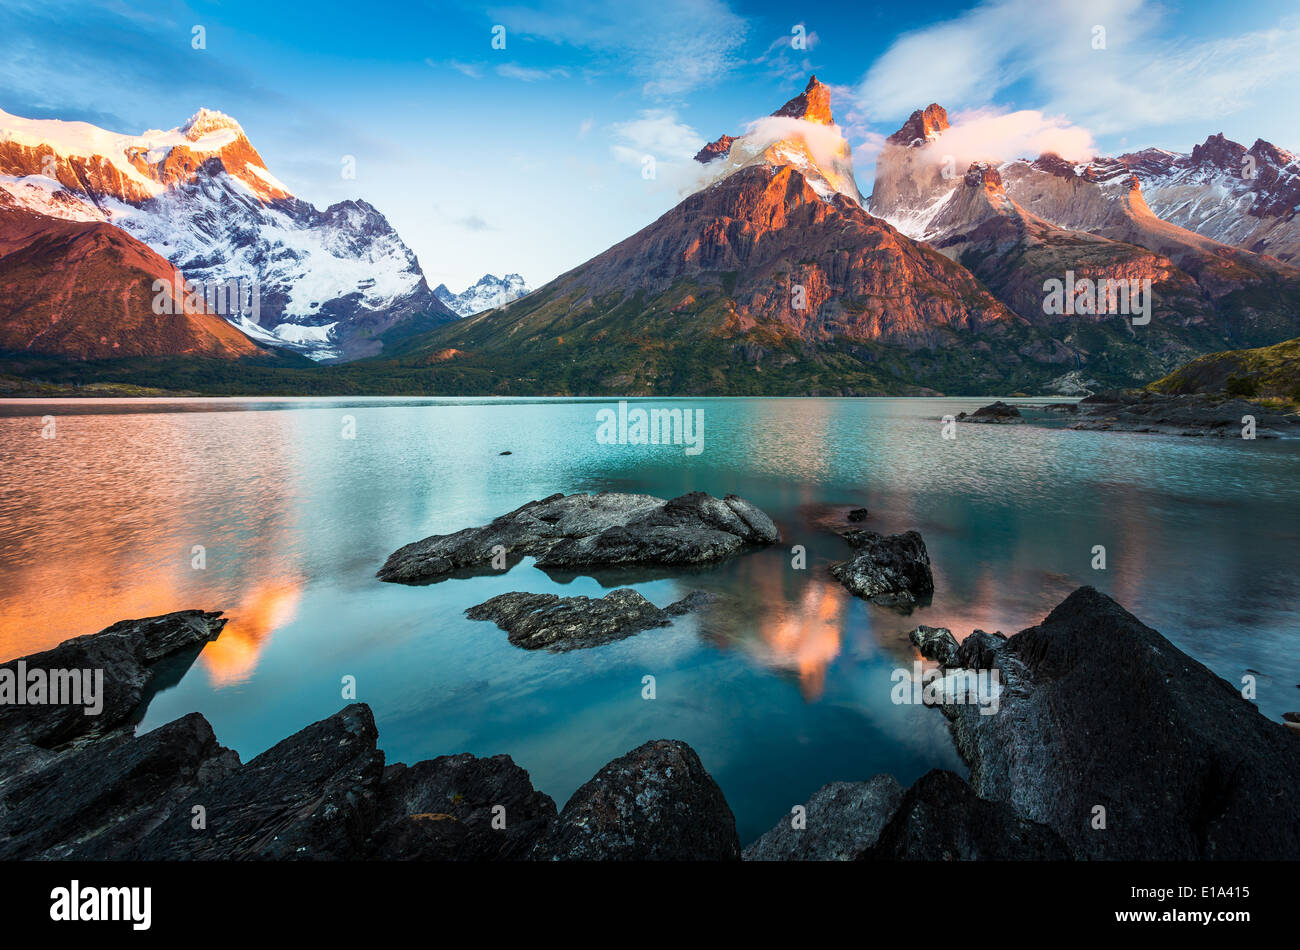 Los Cuernos reflecting in Lago Nordenskjold, Torres del Paine, Chilean Patagonia - Stock Image